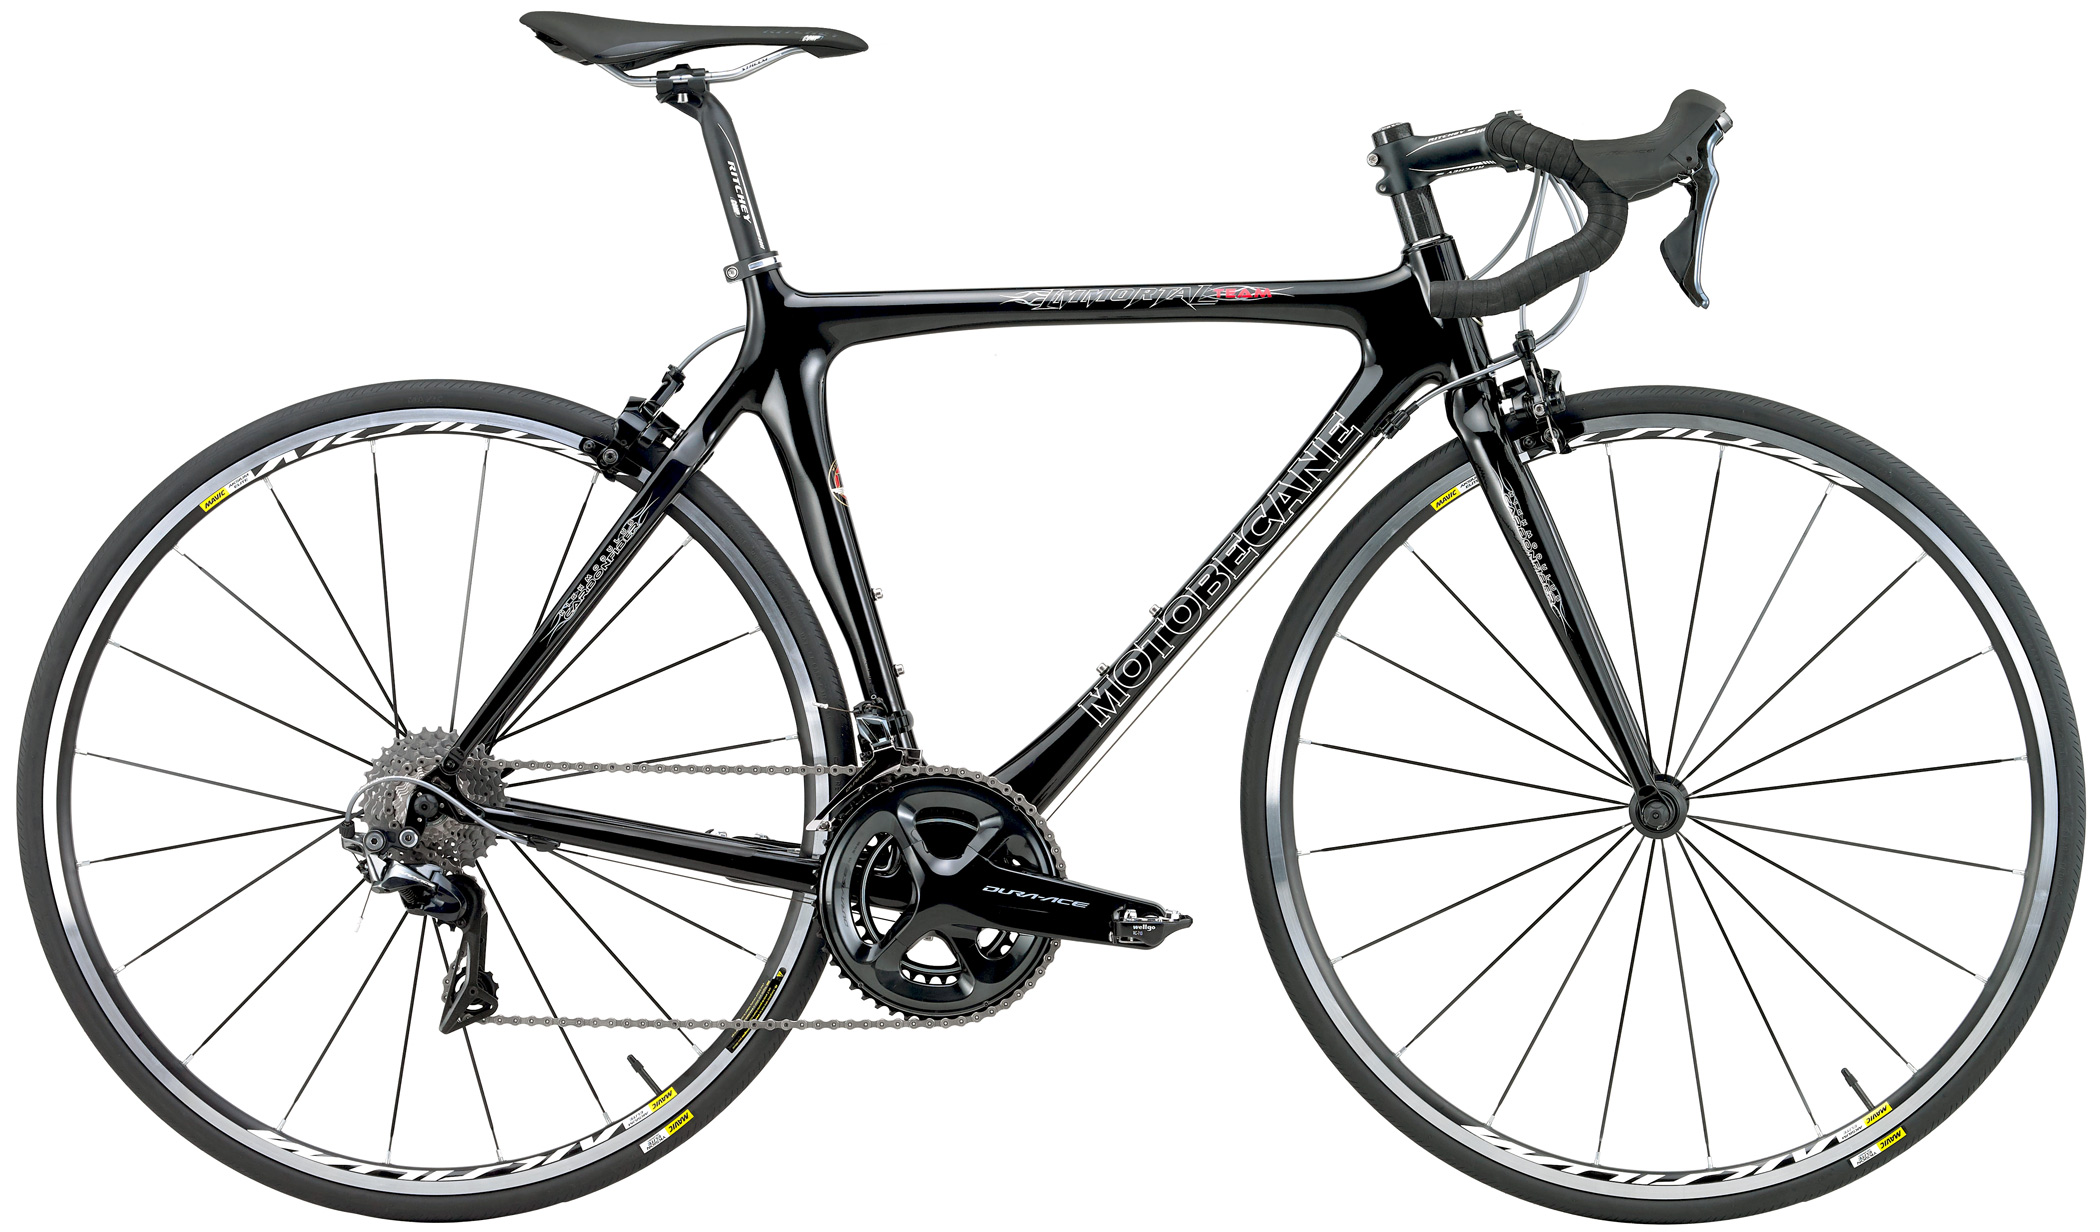 Up to 60% off Shimano Dura Ace 9100 Carbon Fiber Road